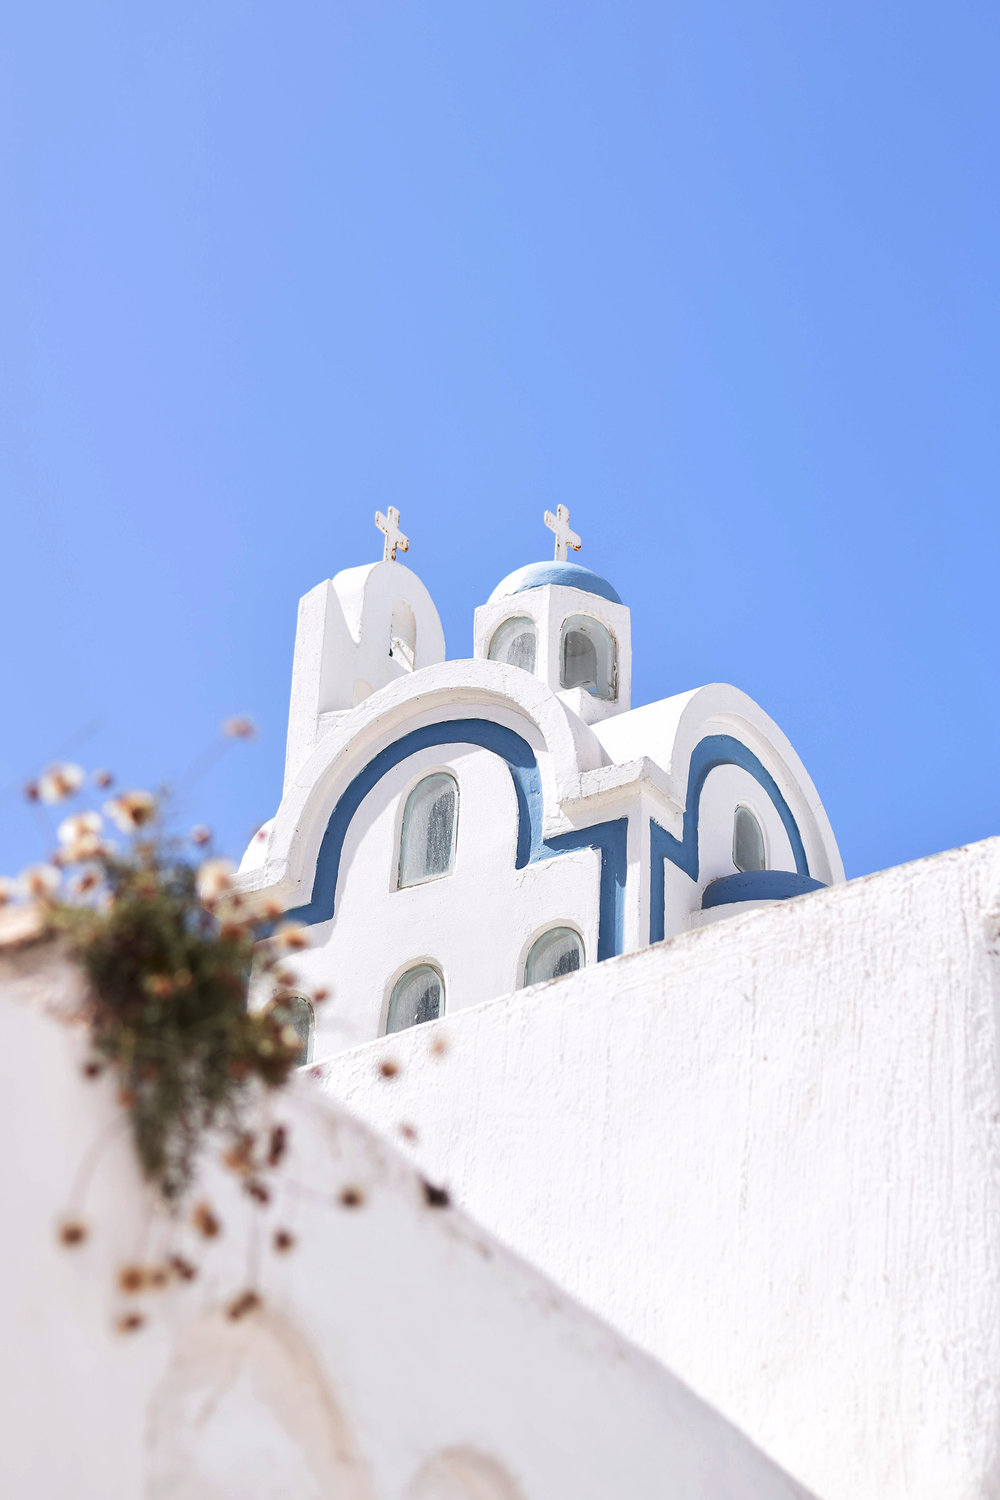 A church in Megalochori, Santorini